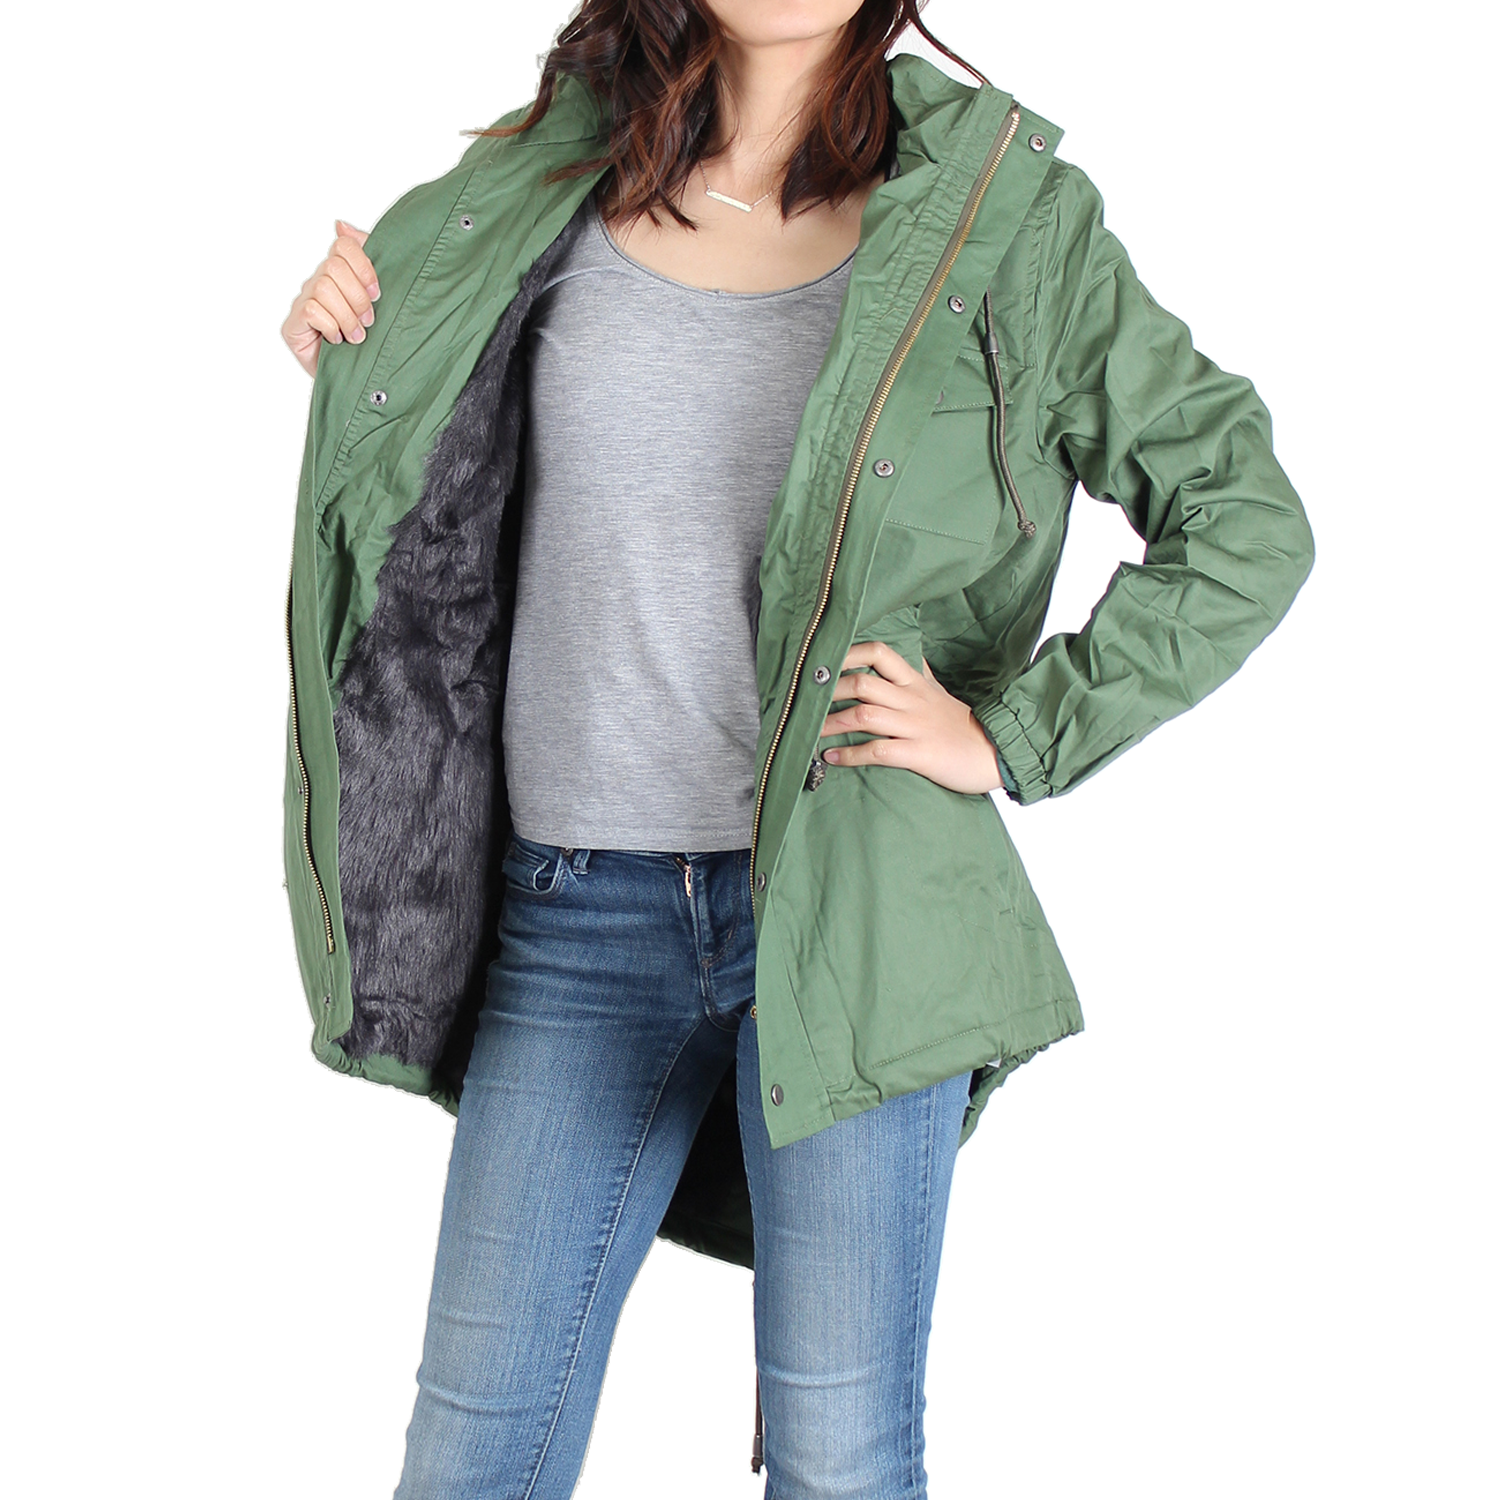 Hunter Green Faux-Fur Lined Anorak Jacket - 50% OFF